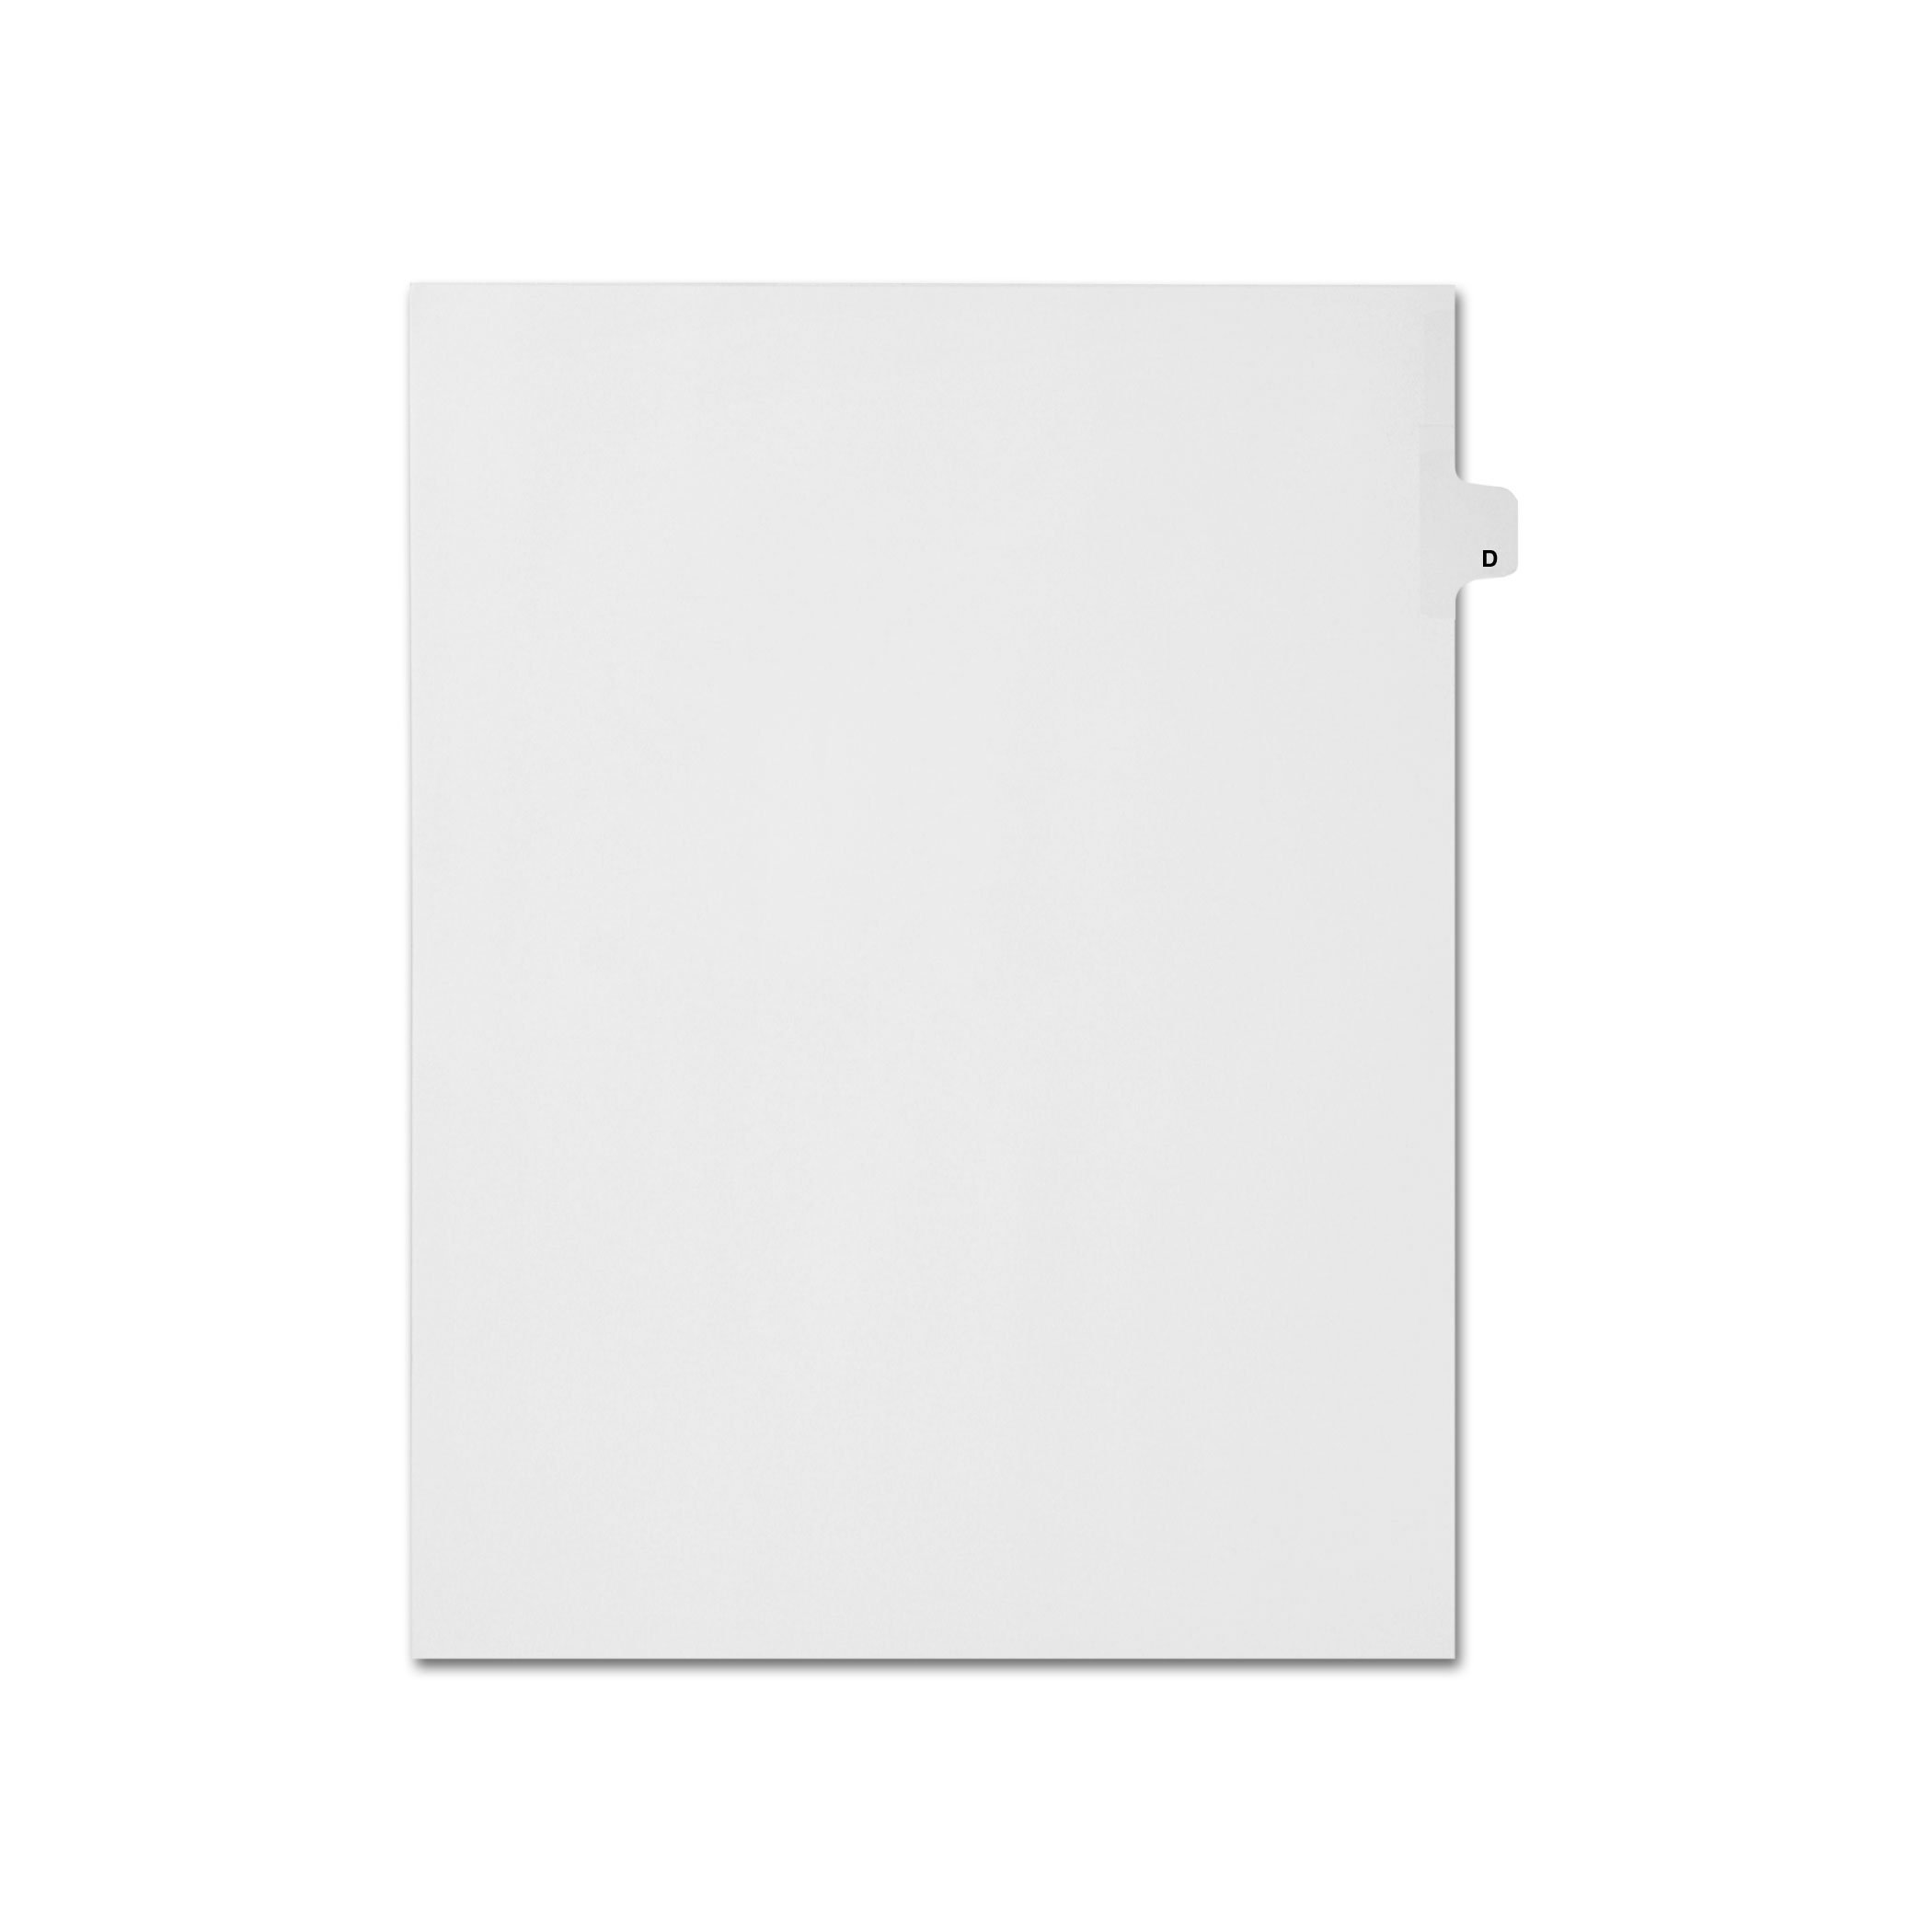 AMZfiling Individual Legal Index Tab Dividers, Compatible with Avery- Printed D, Letter Size, White, Side Tabs, Position 4 (25 Sheets/pkg)